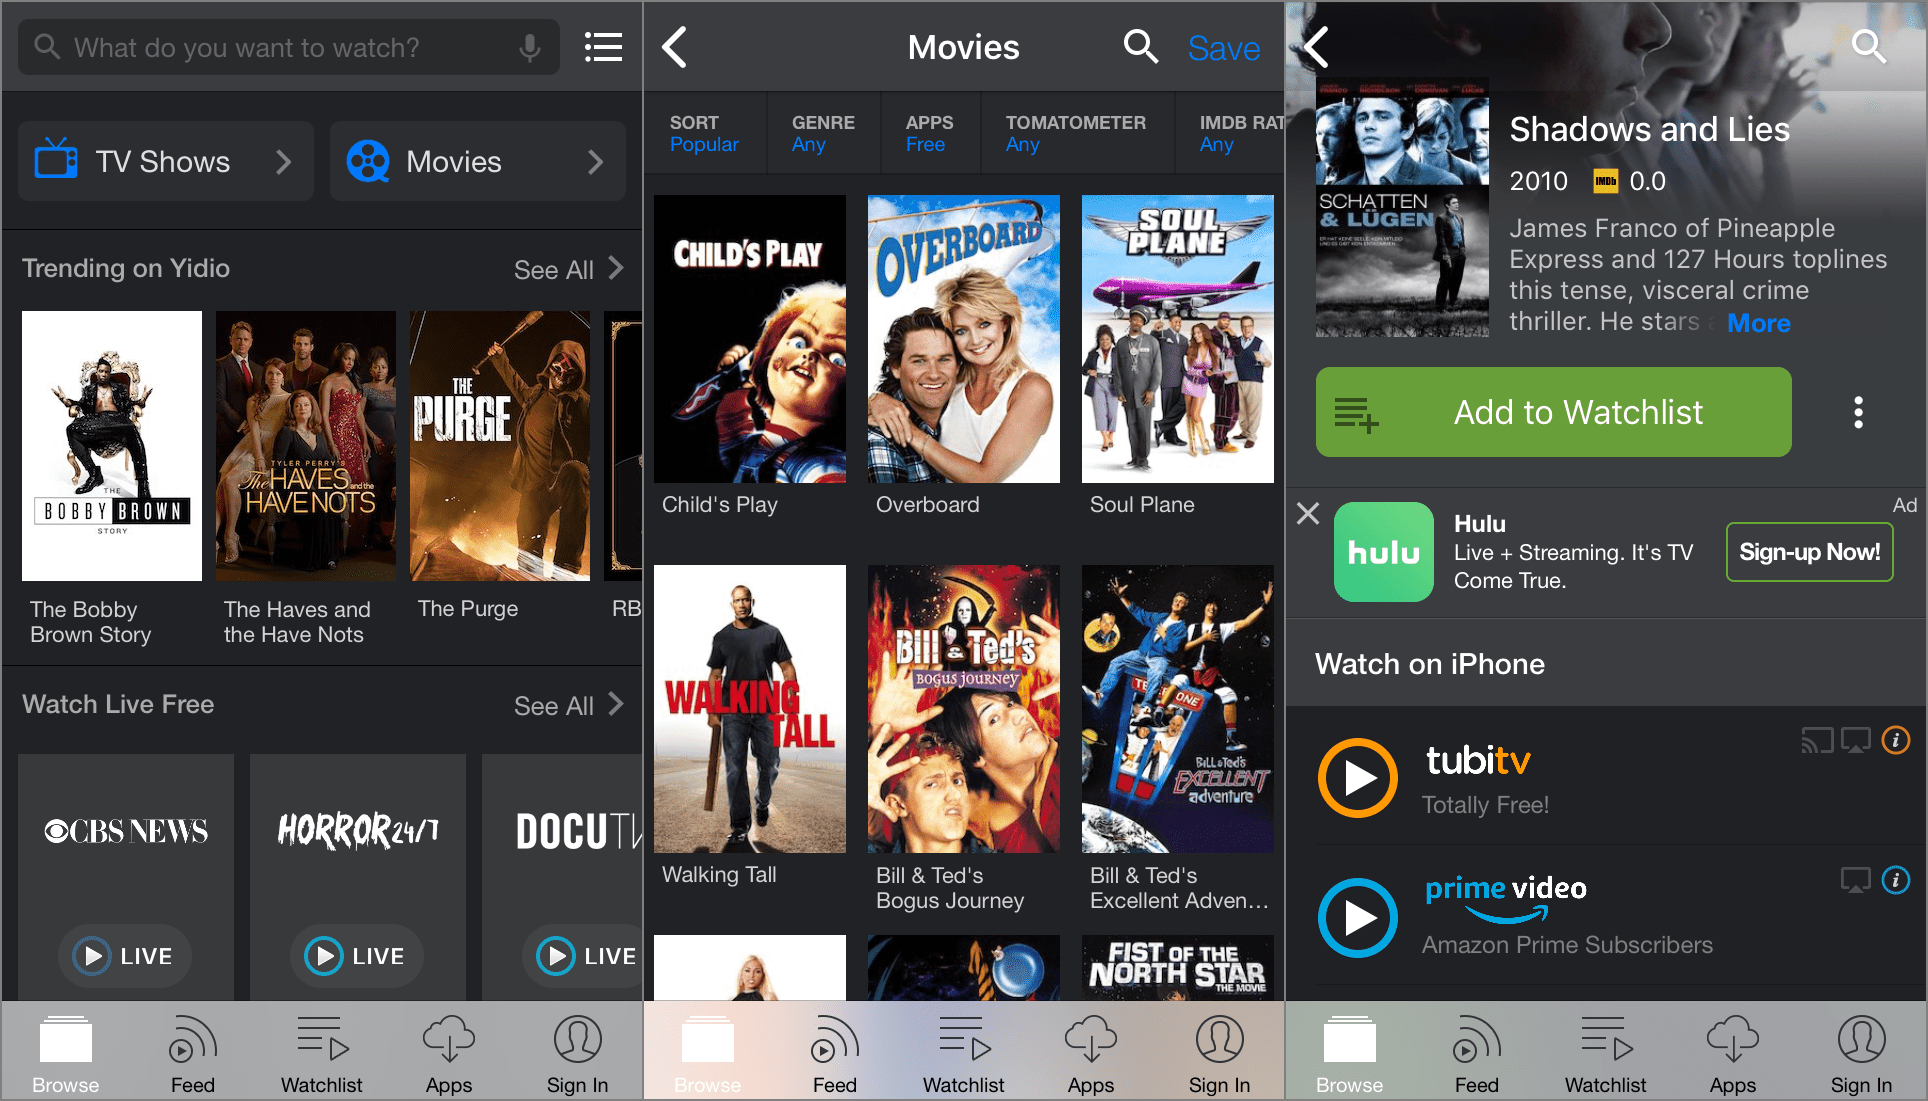 watch full movies for free on iphone